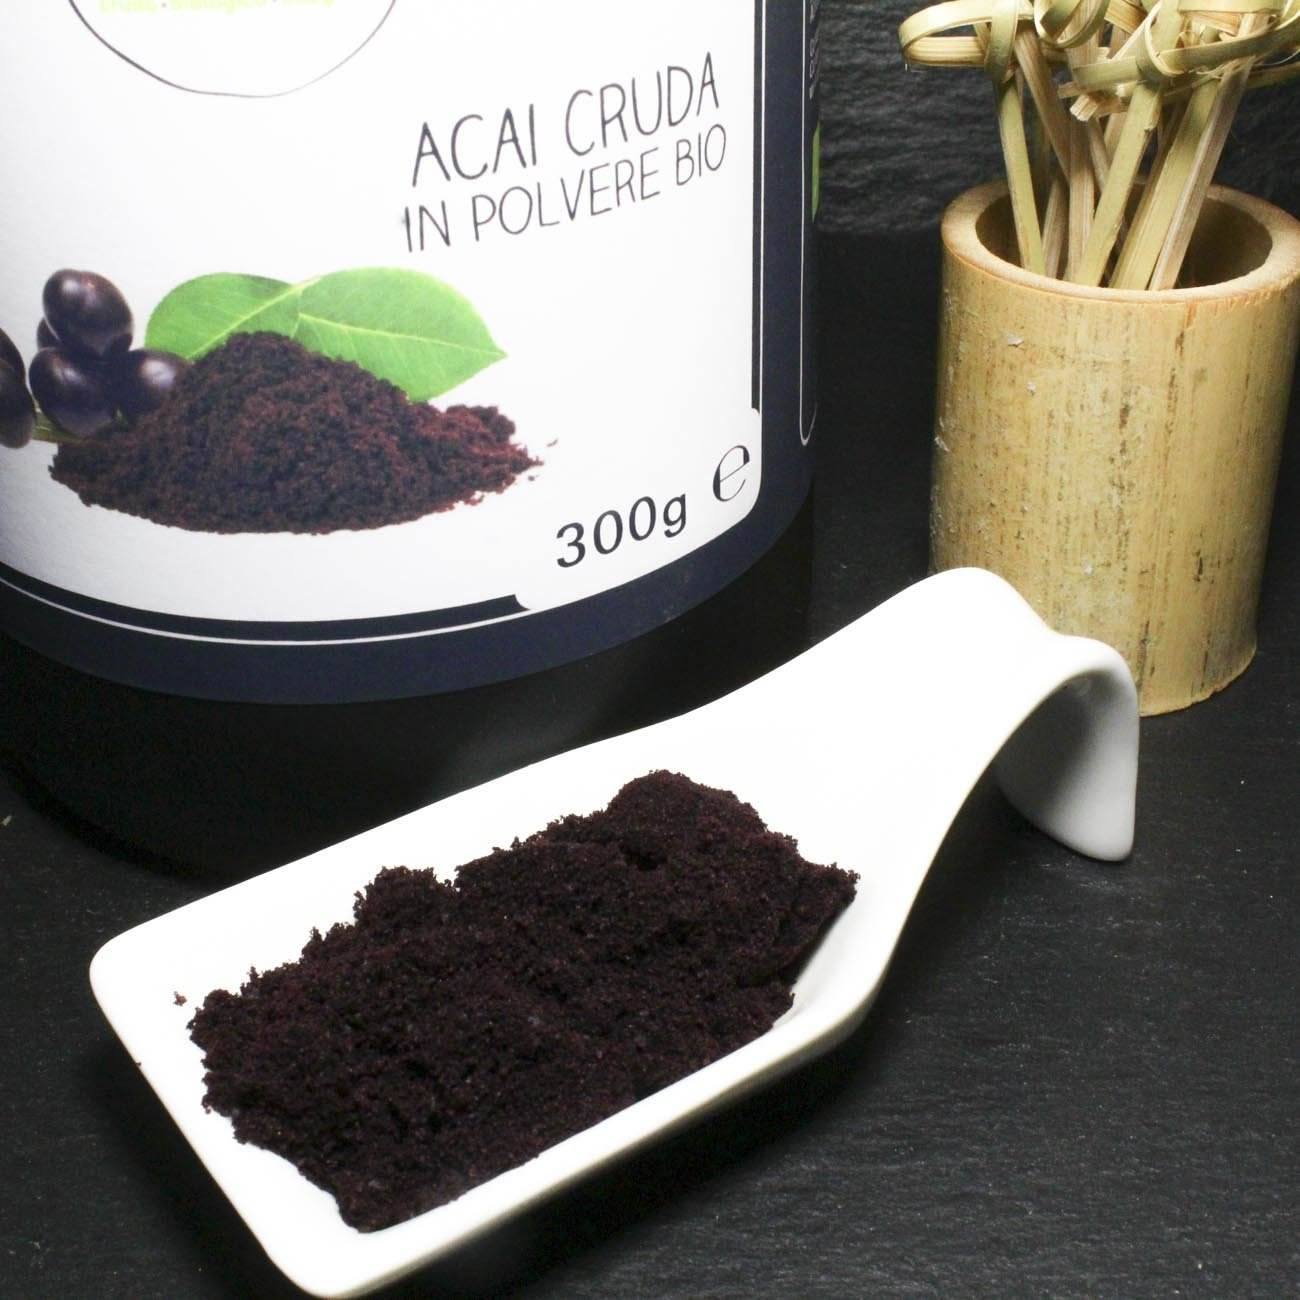 Acai<br/>In Polvere Cruda Bio - Acai Powder Raw Organic - 300g